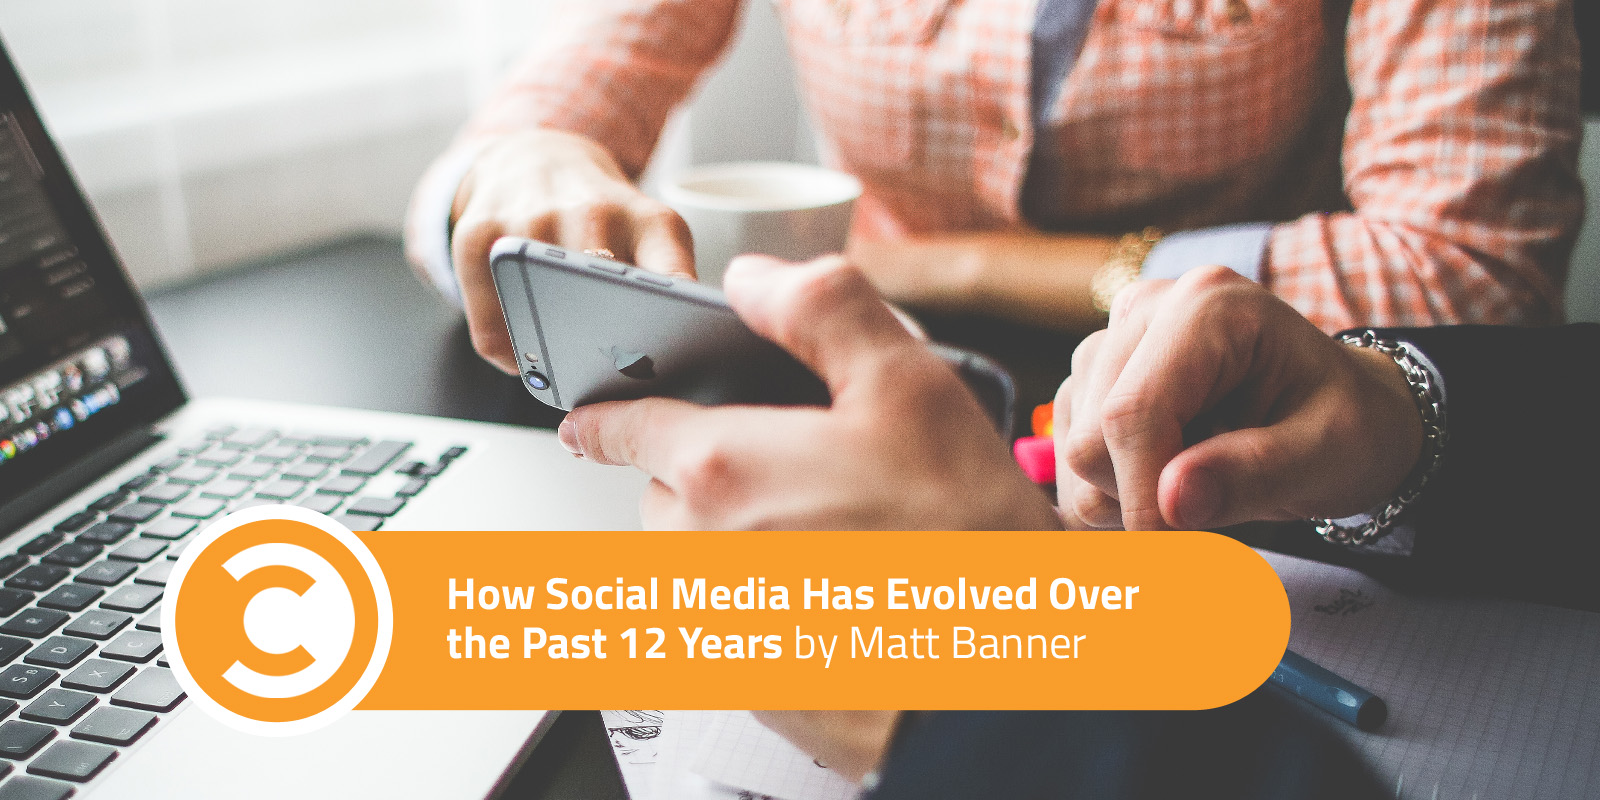 How Social Media Has Evolved Over the Past 12 Years